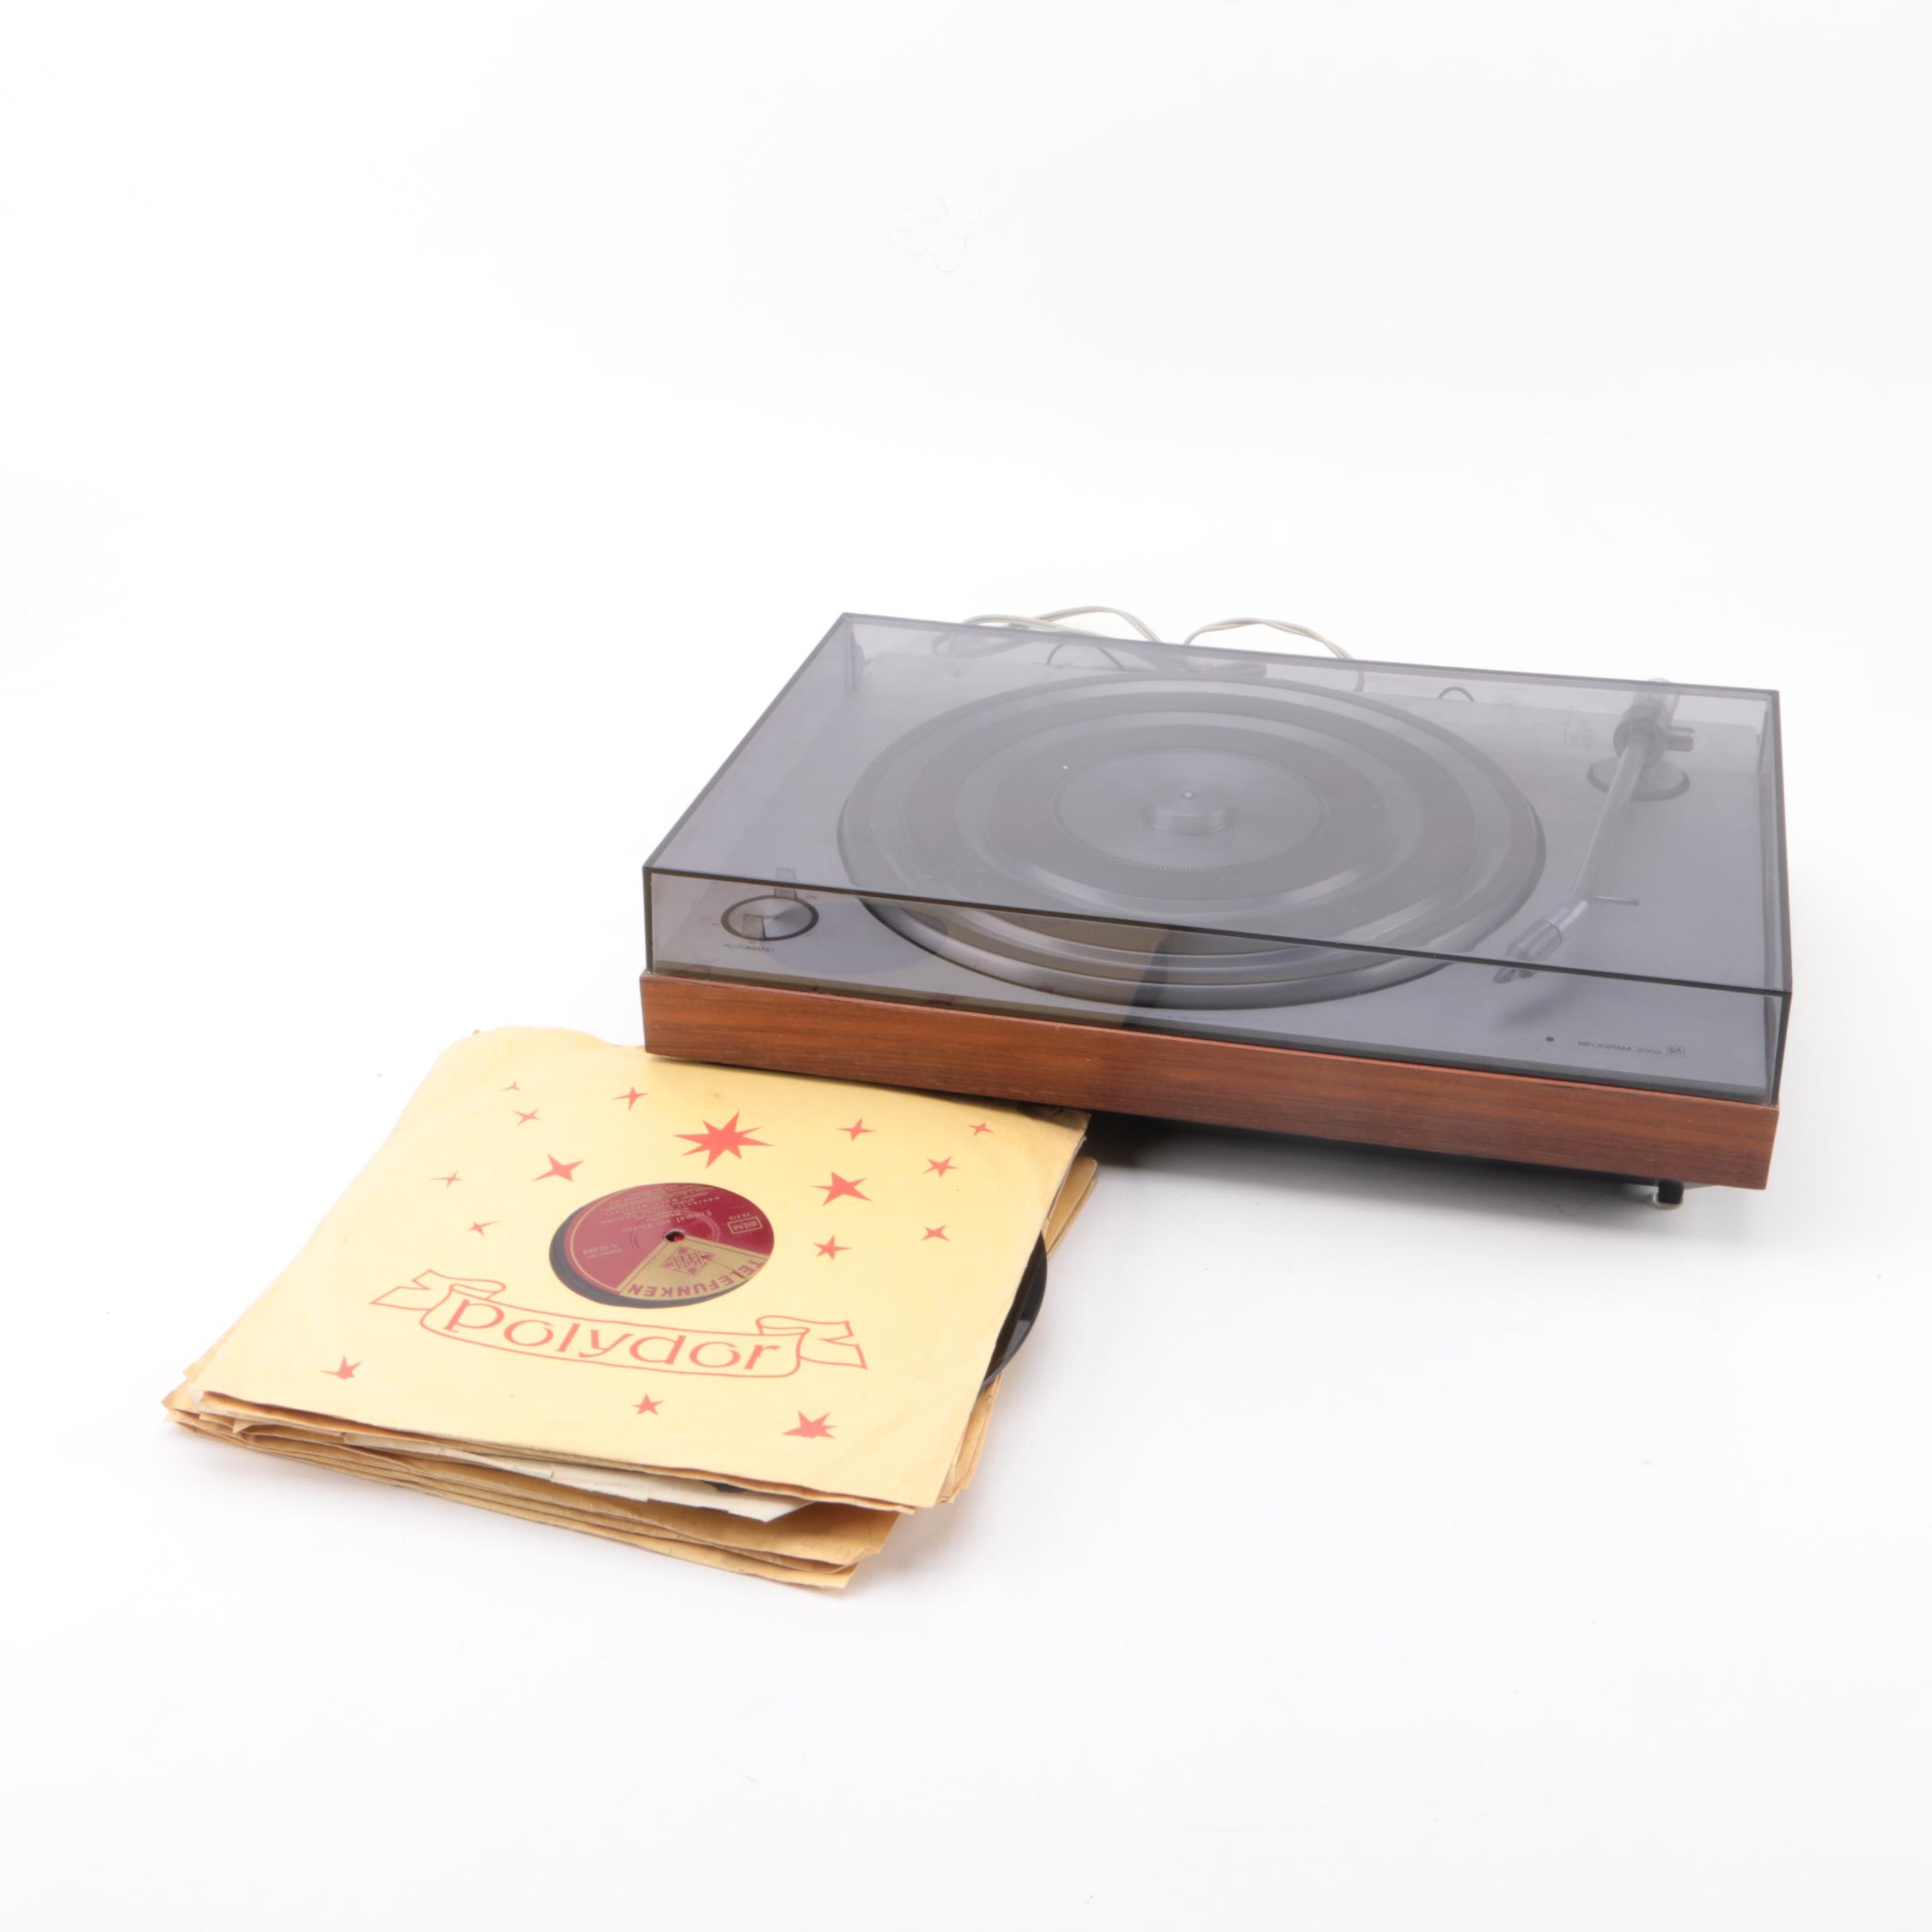 Beogram 3000 45 RPM Turntable with Vintage Records.